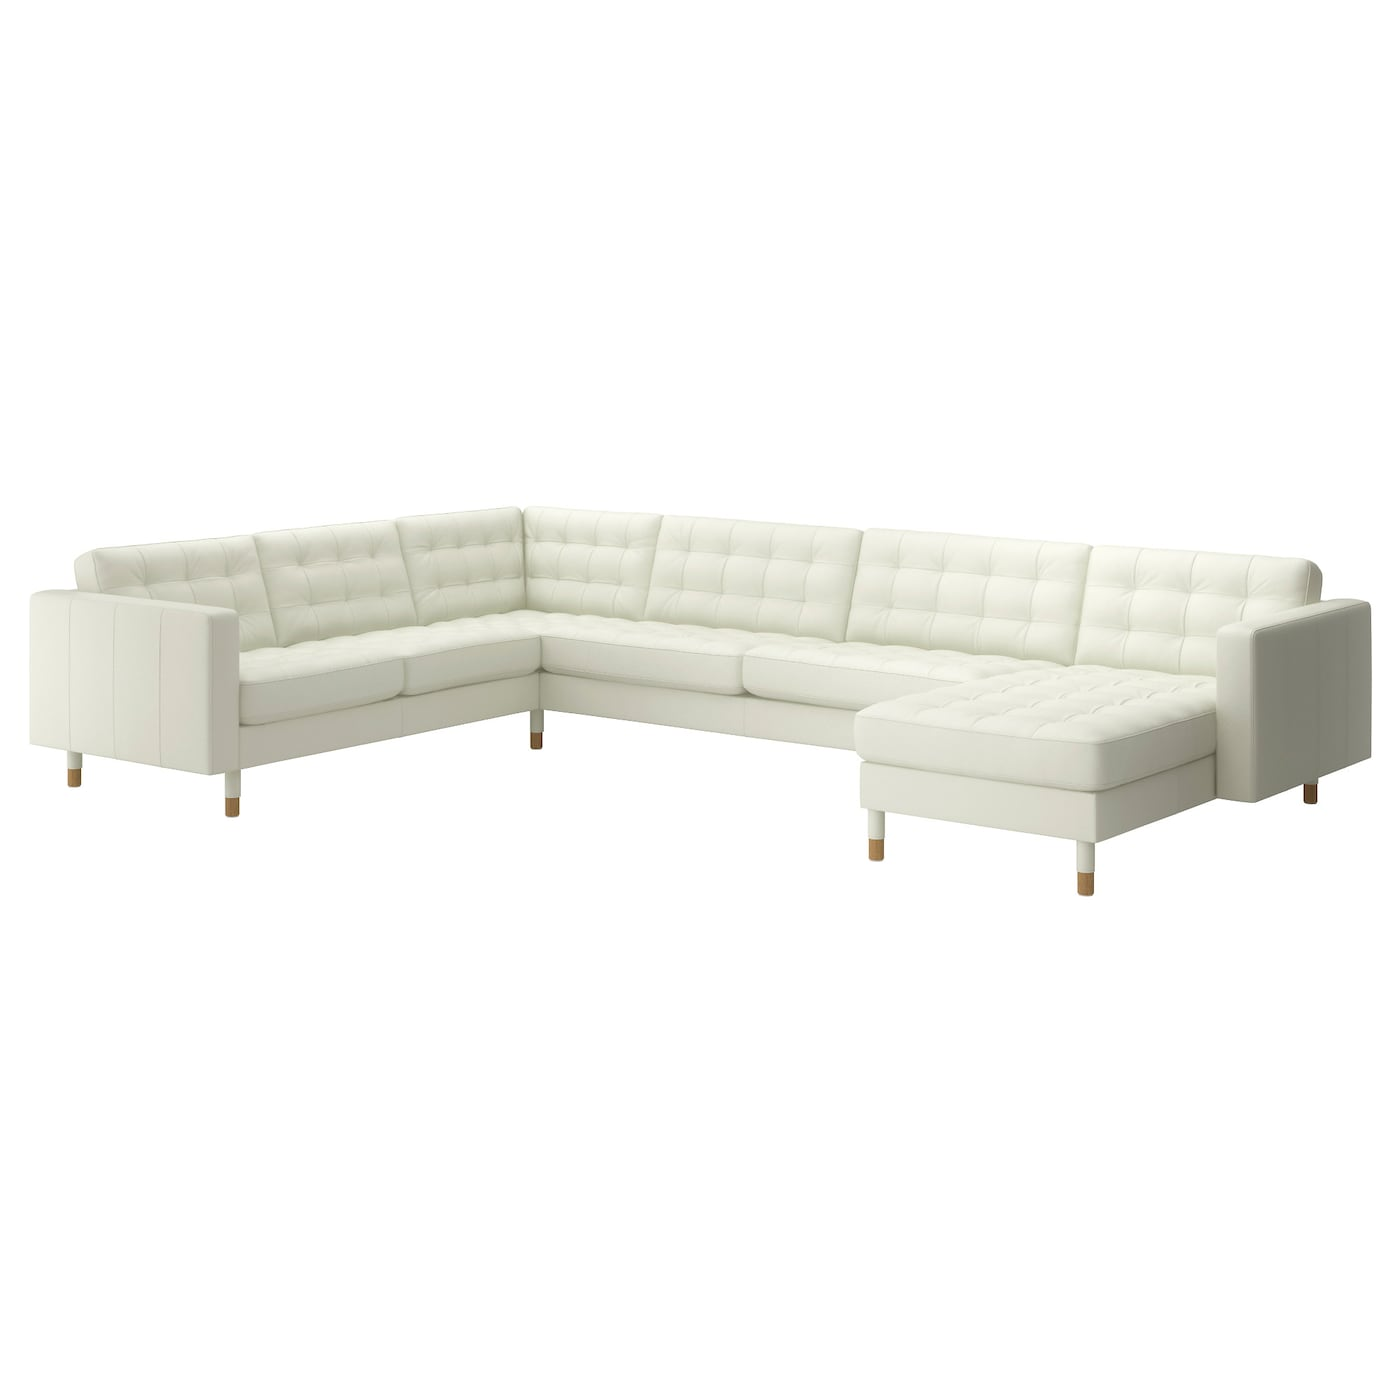 LANDSKRONA Corner sofa 23  32 and chaise longue Grann  bomstad white  wood   IKEA